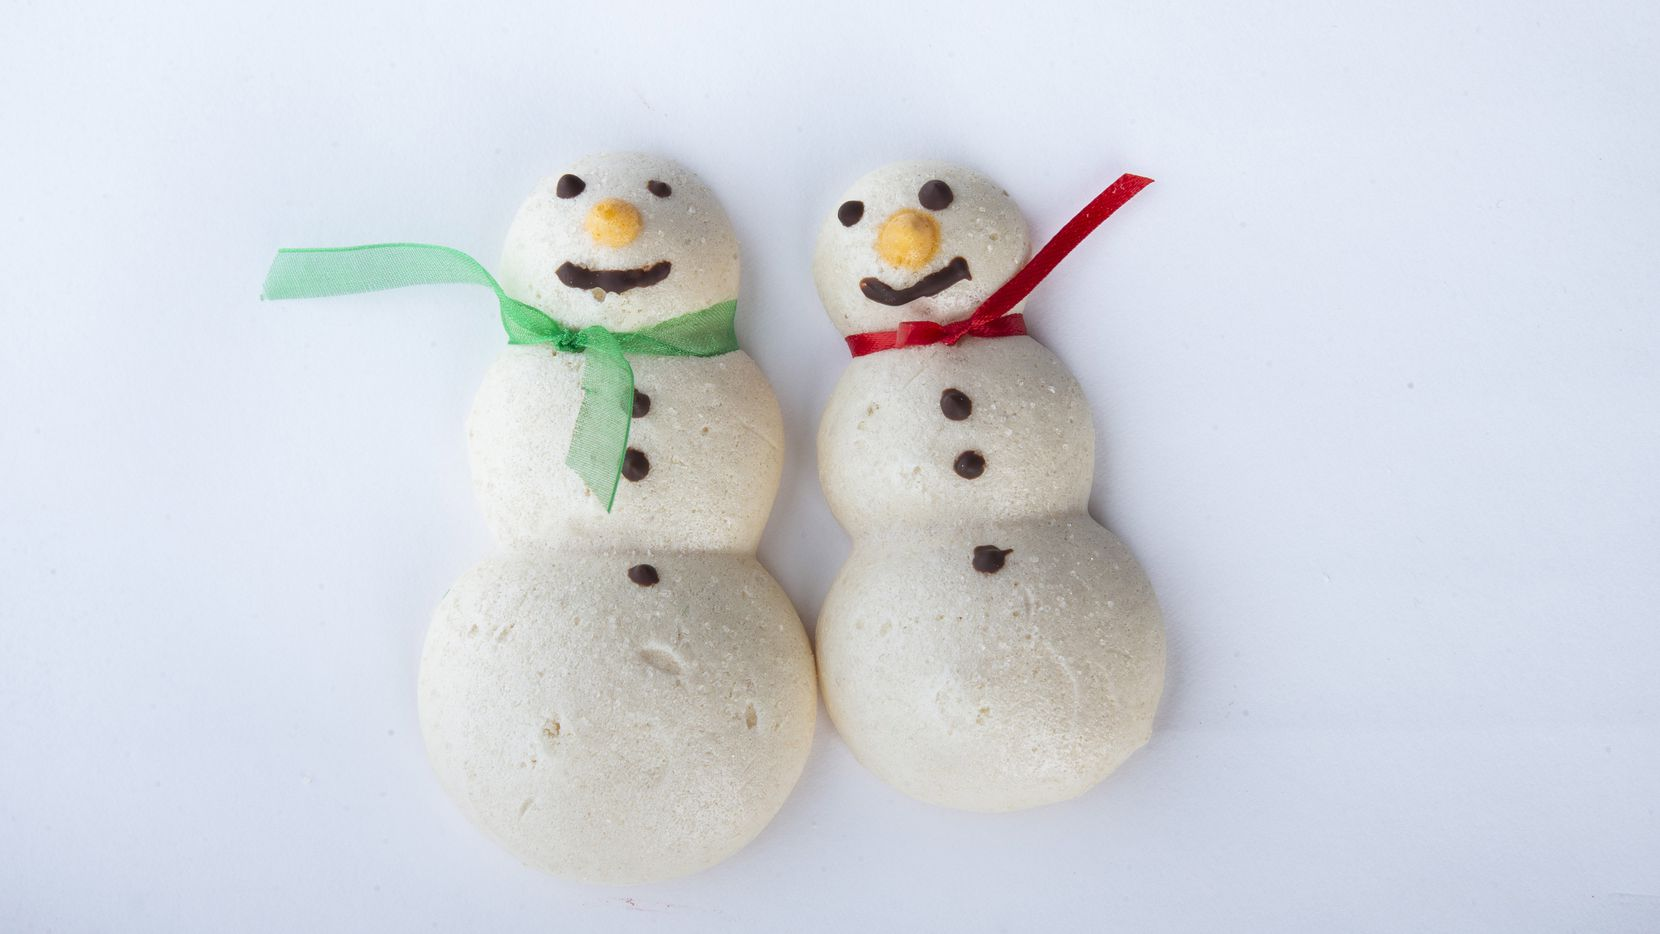 The meringue snowman cookies made by Phyllis Bustillos won third place in the special diet category of the 24th annual Christmas Cookie Contest